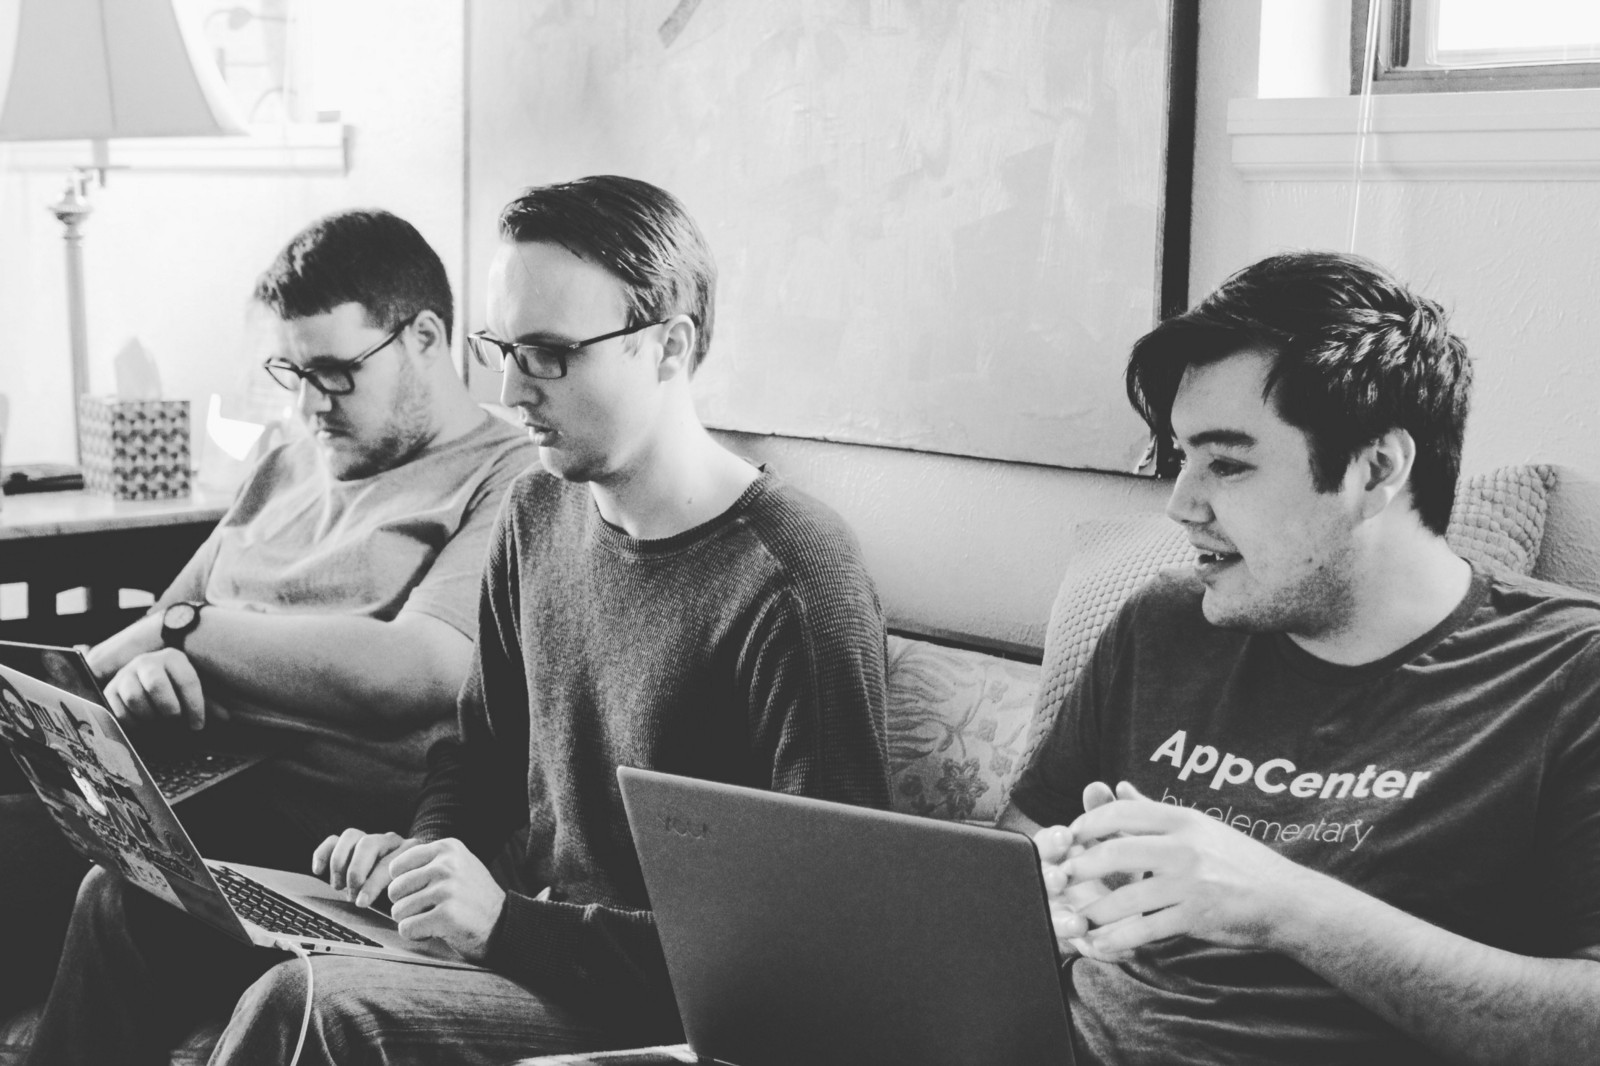 Nathan, Cody, and Dan at a hackfest